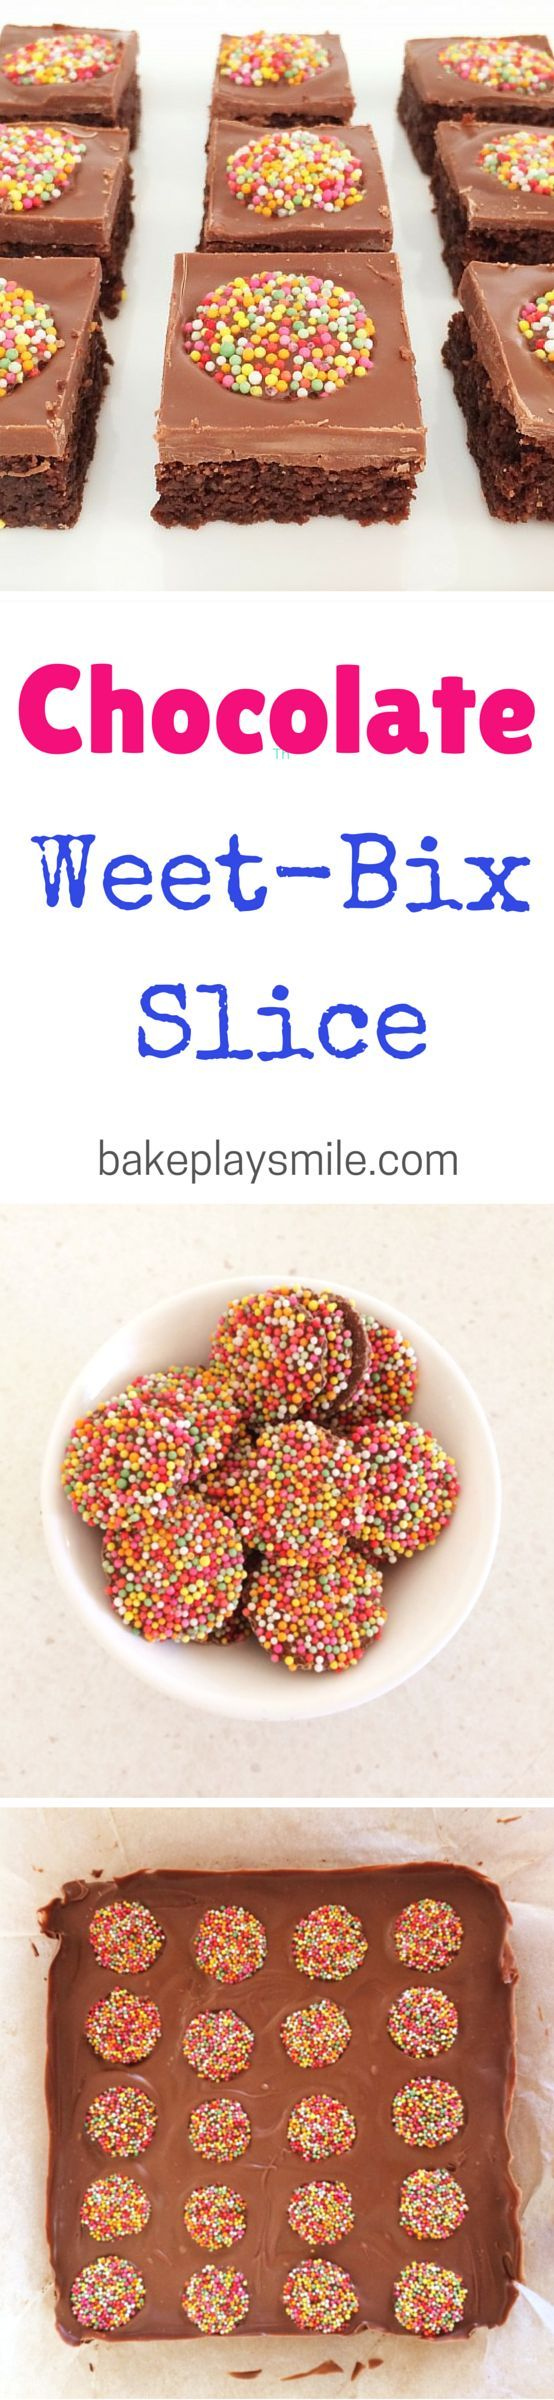 Like this?  Then you are going to love this http://bargainmums.com.au/weet-bix-slice #weetbix #slice #lunchbox